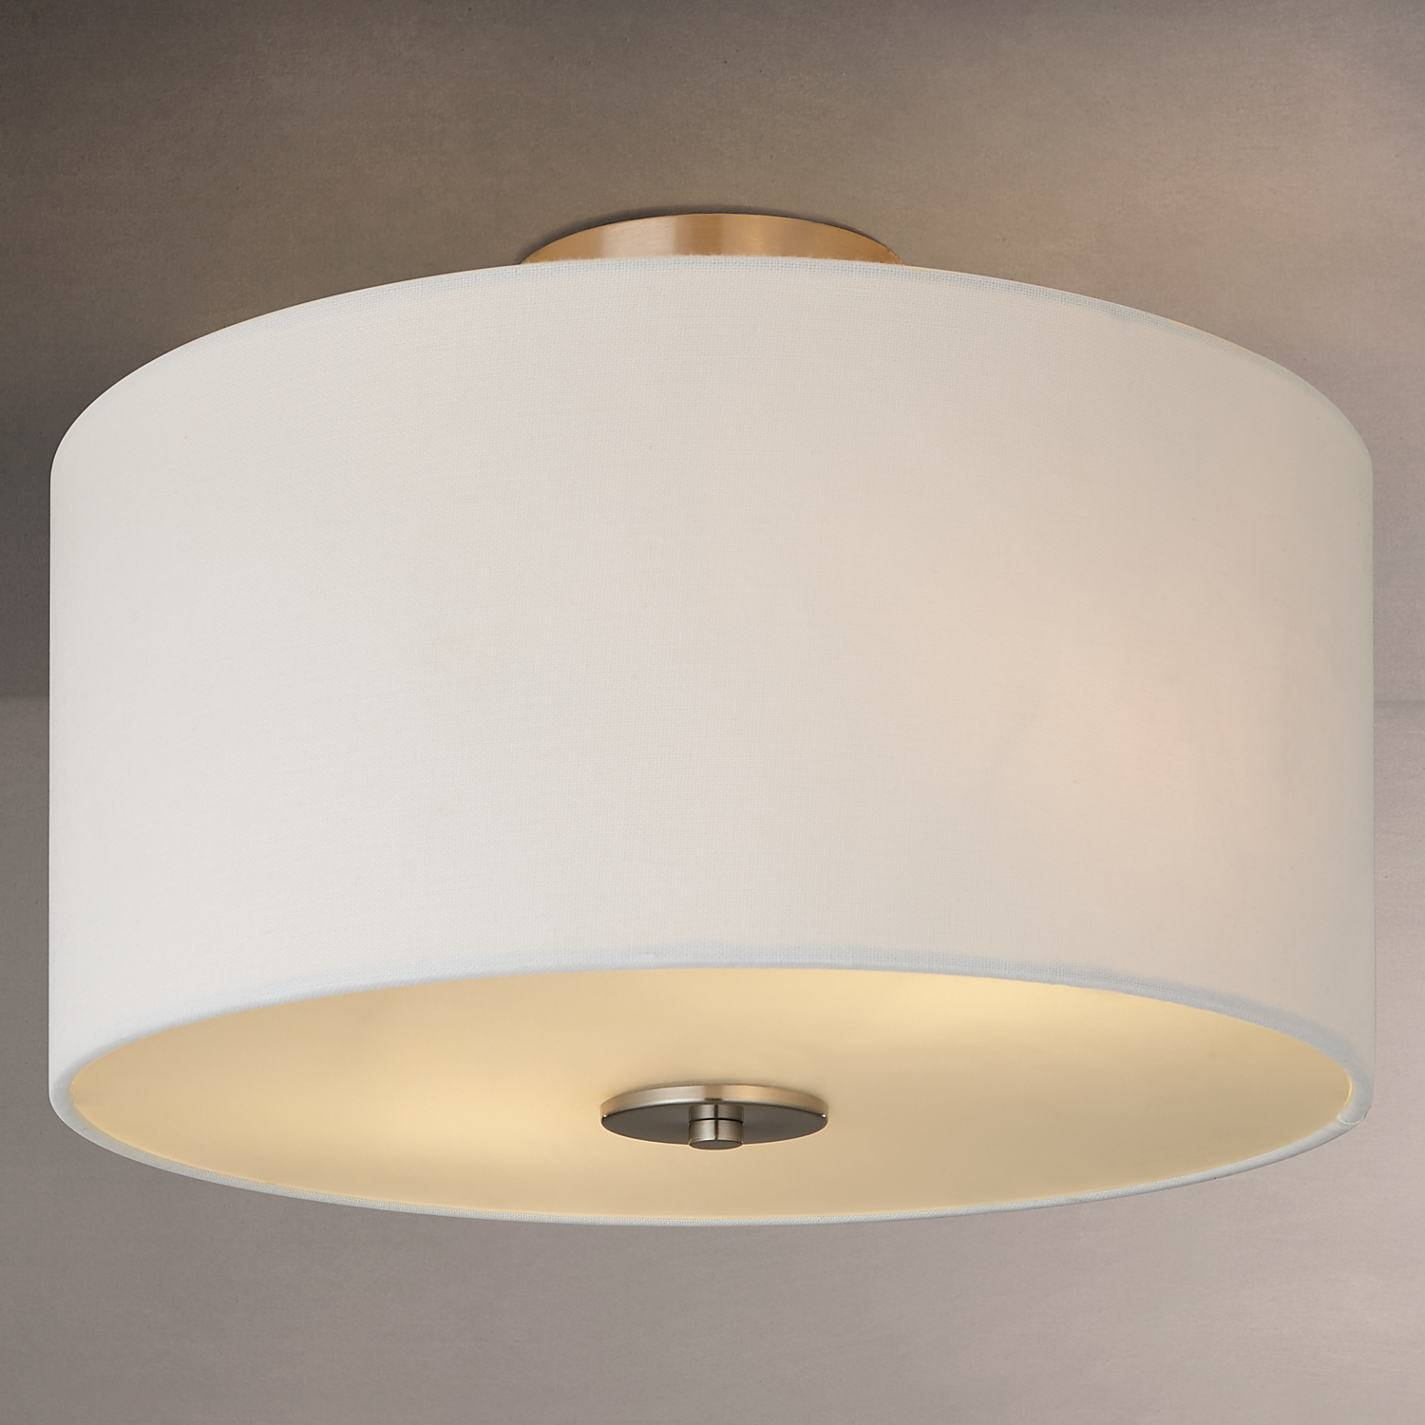 Luxury Semi Flush Ceiling Light 85 For Pendant Lights Modern With with John Lewis Pendant Lights (Image 14 of 15)